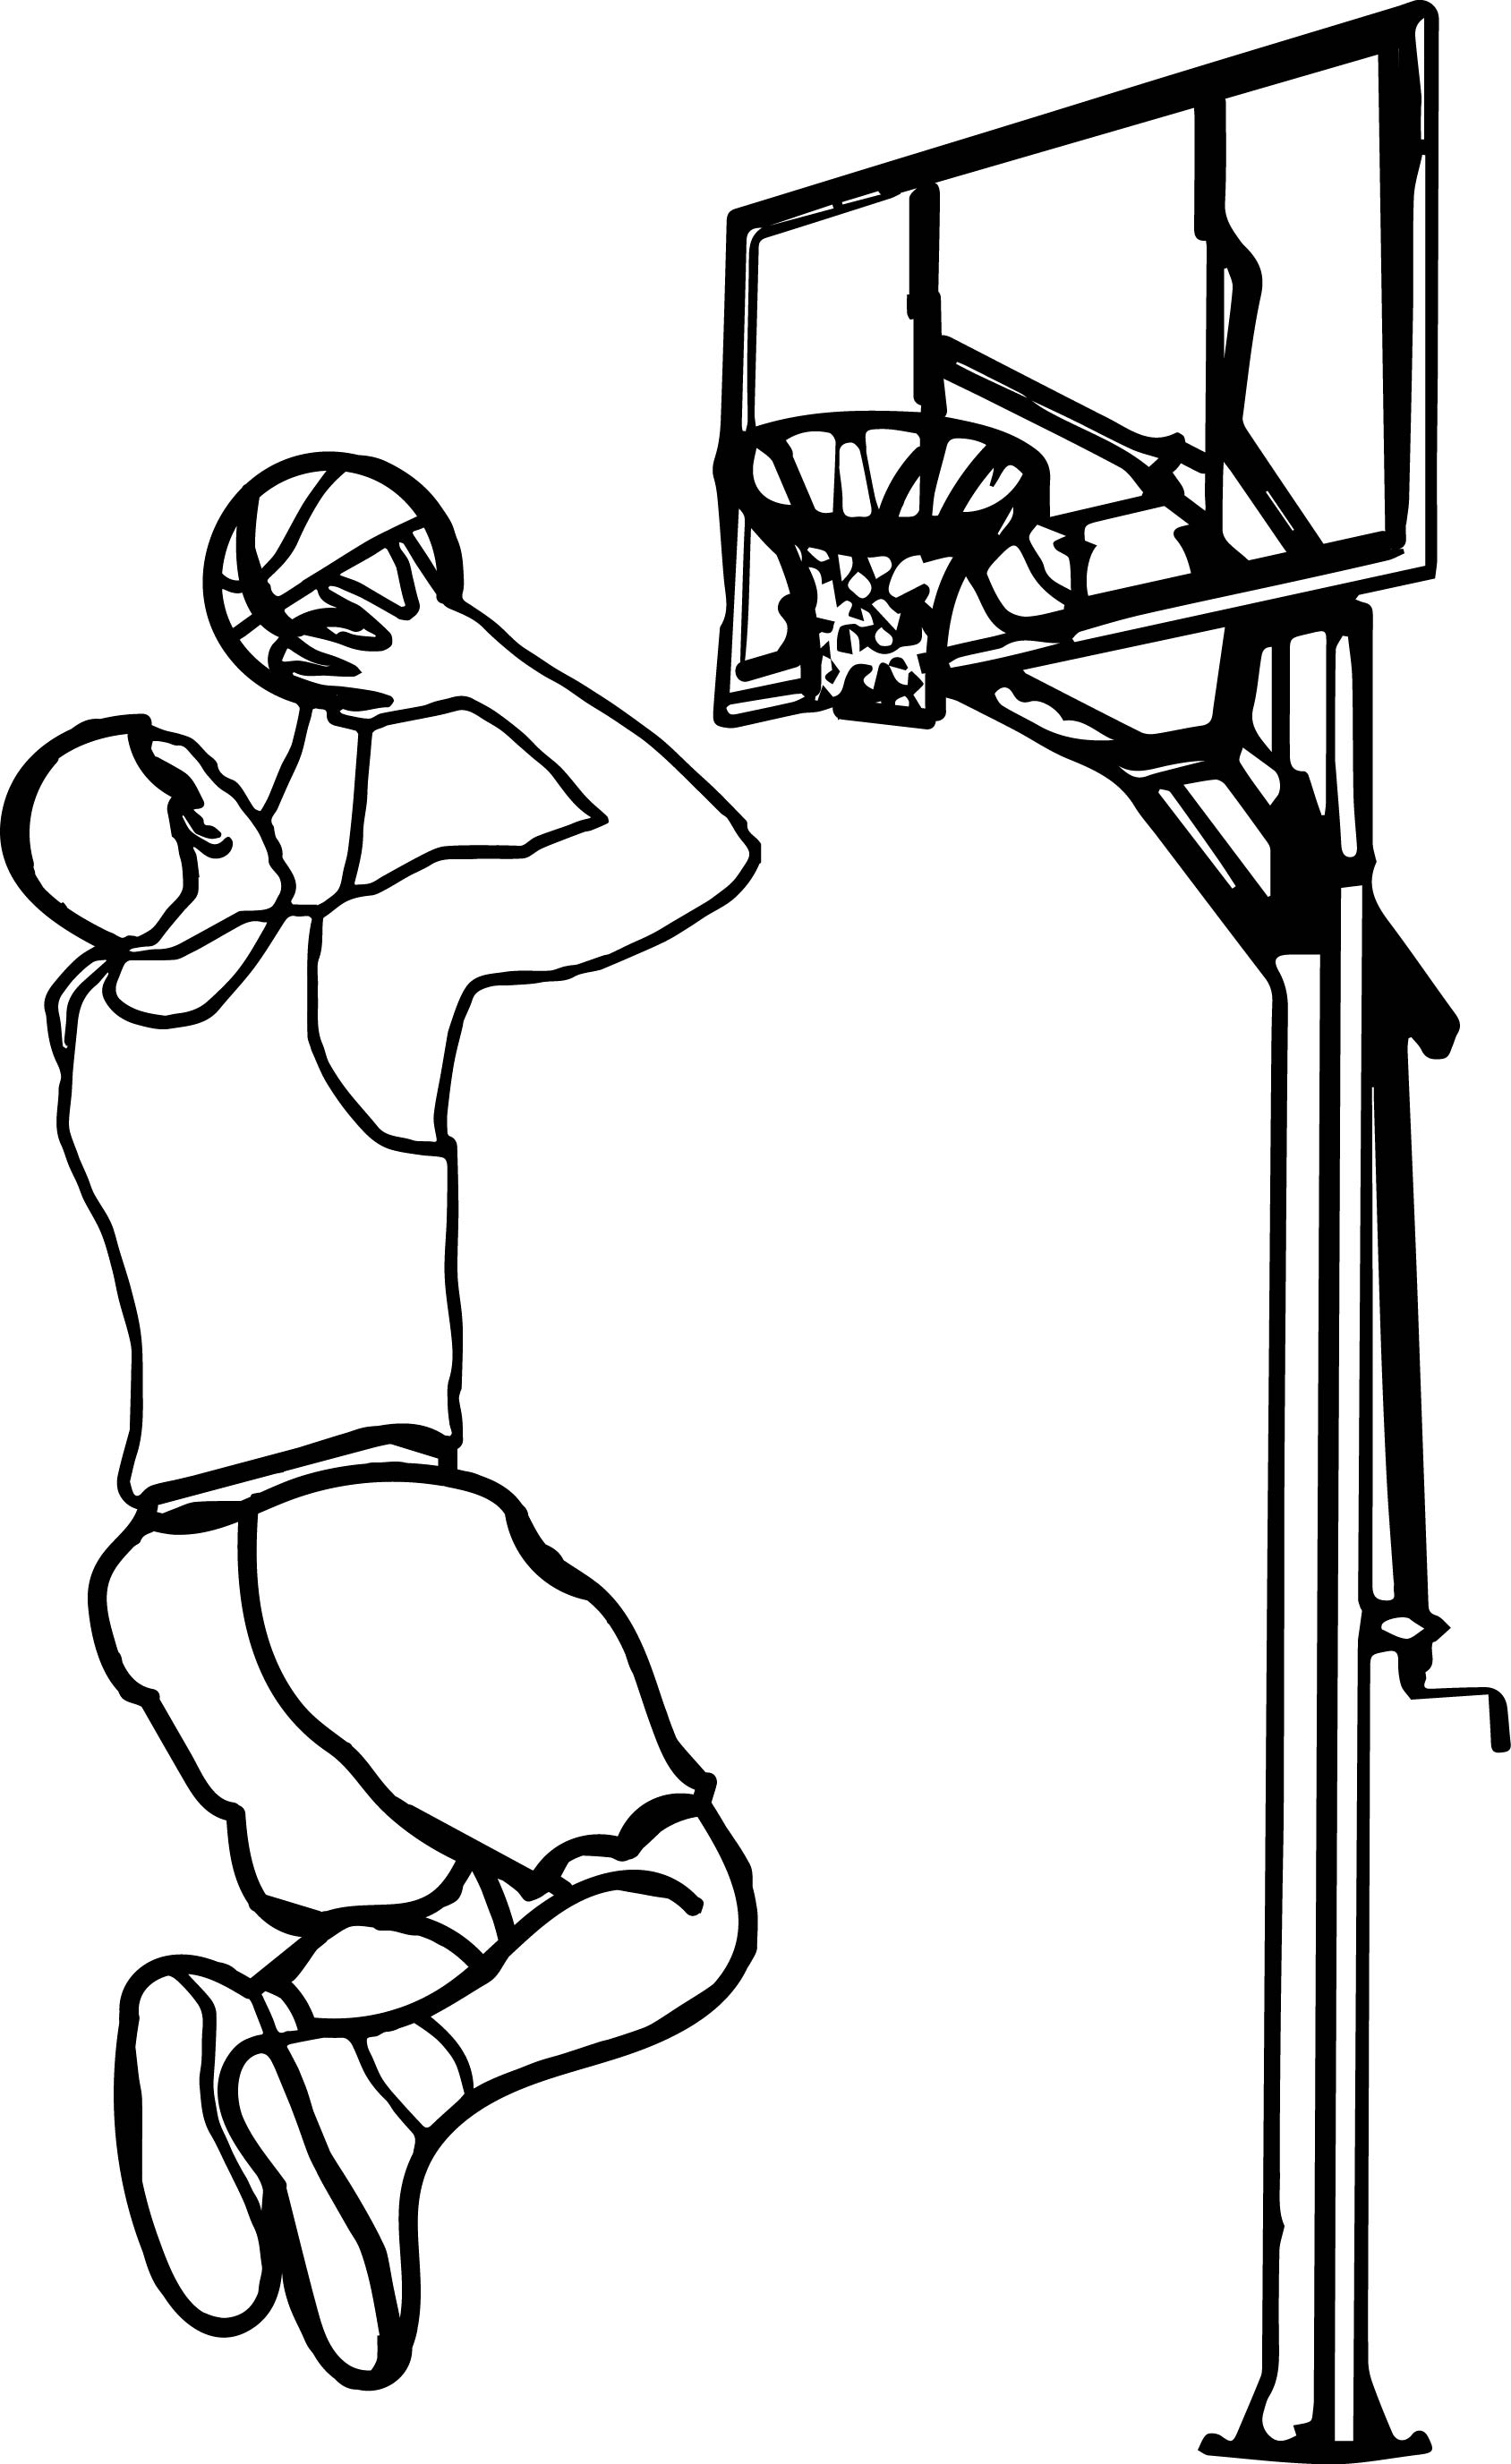 The Basketball Clipart For My Friend Thatrsquos You